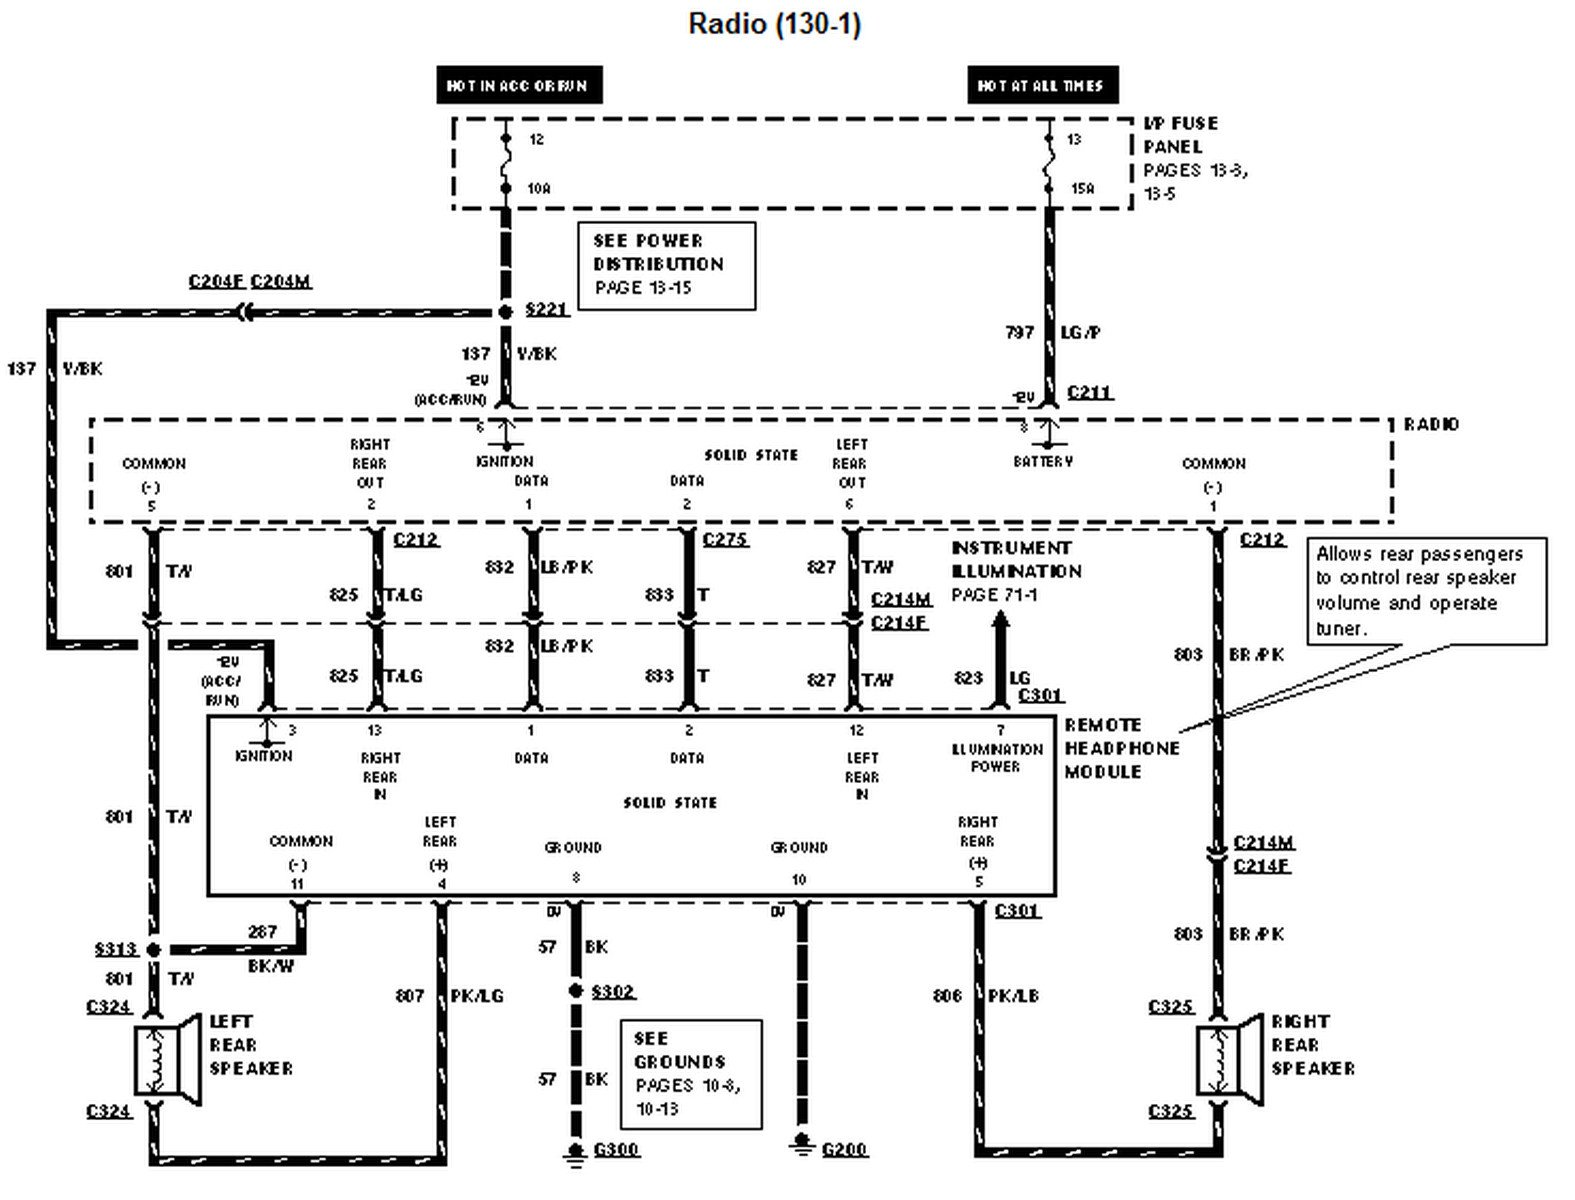 2010 03 13_005506_96_Windstar_radio_wiring_diagram i need the wiring diagram for a 1996 ford explorer radio 2002 ford windstar radio wiring diagram at reclaimingppi.co